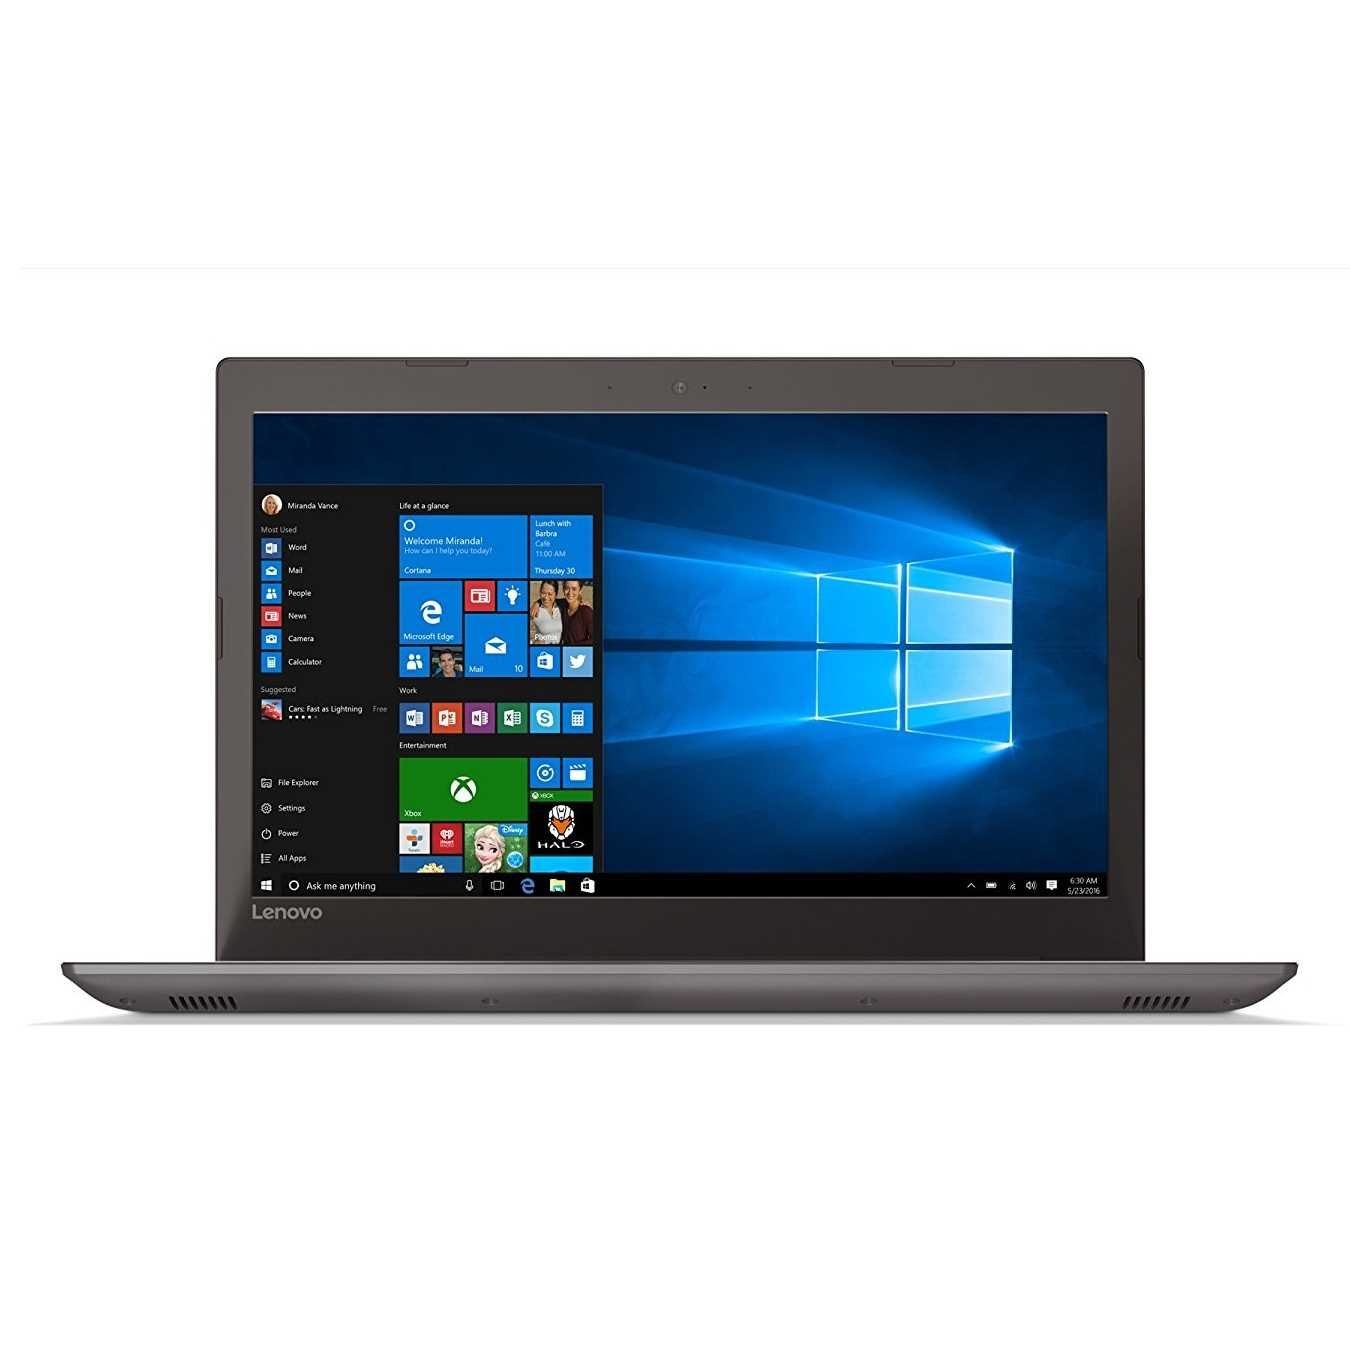 Lenovo IdeaPad 520 (80YL00R6IN) Laptop